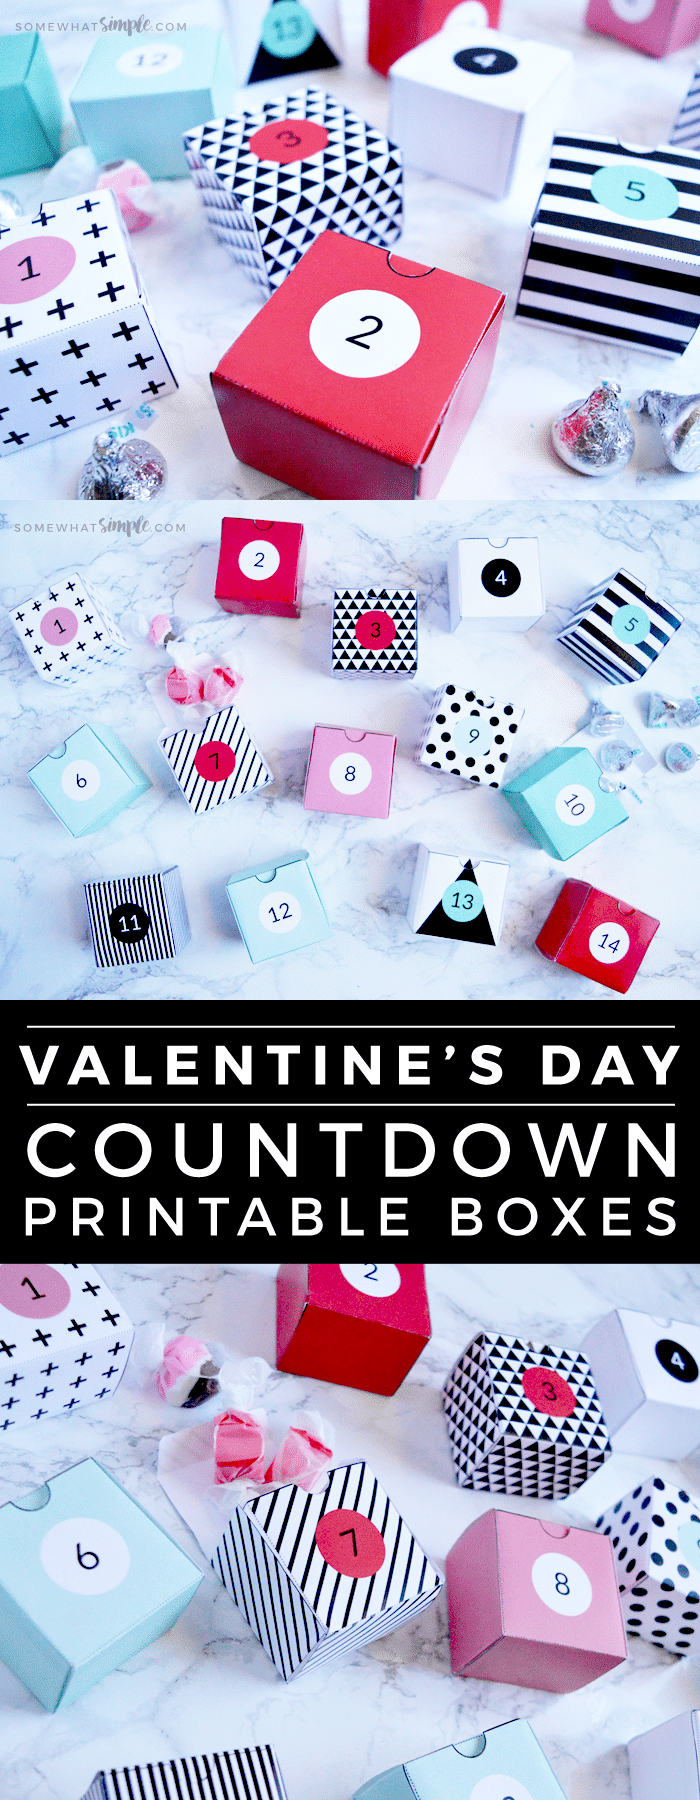 This Valentines Day Countdown is a simple way to make someone feel extra special this year! Countdown to the day of love with these fun printables! #valentines #printables #free #countdown via @somewhatsimple